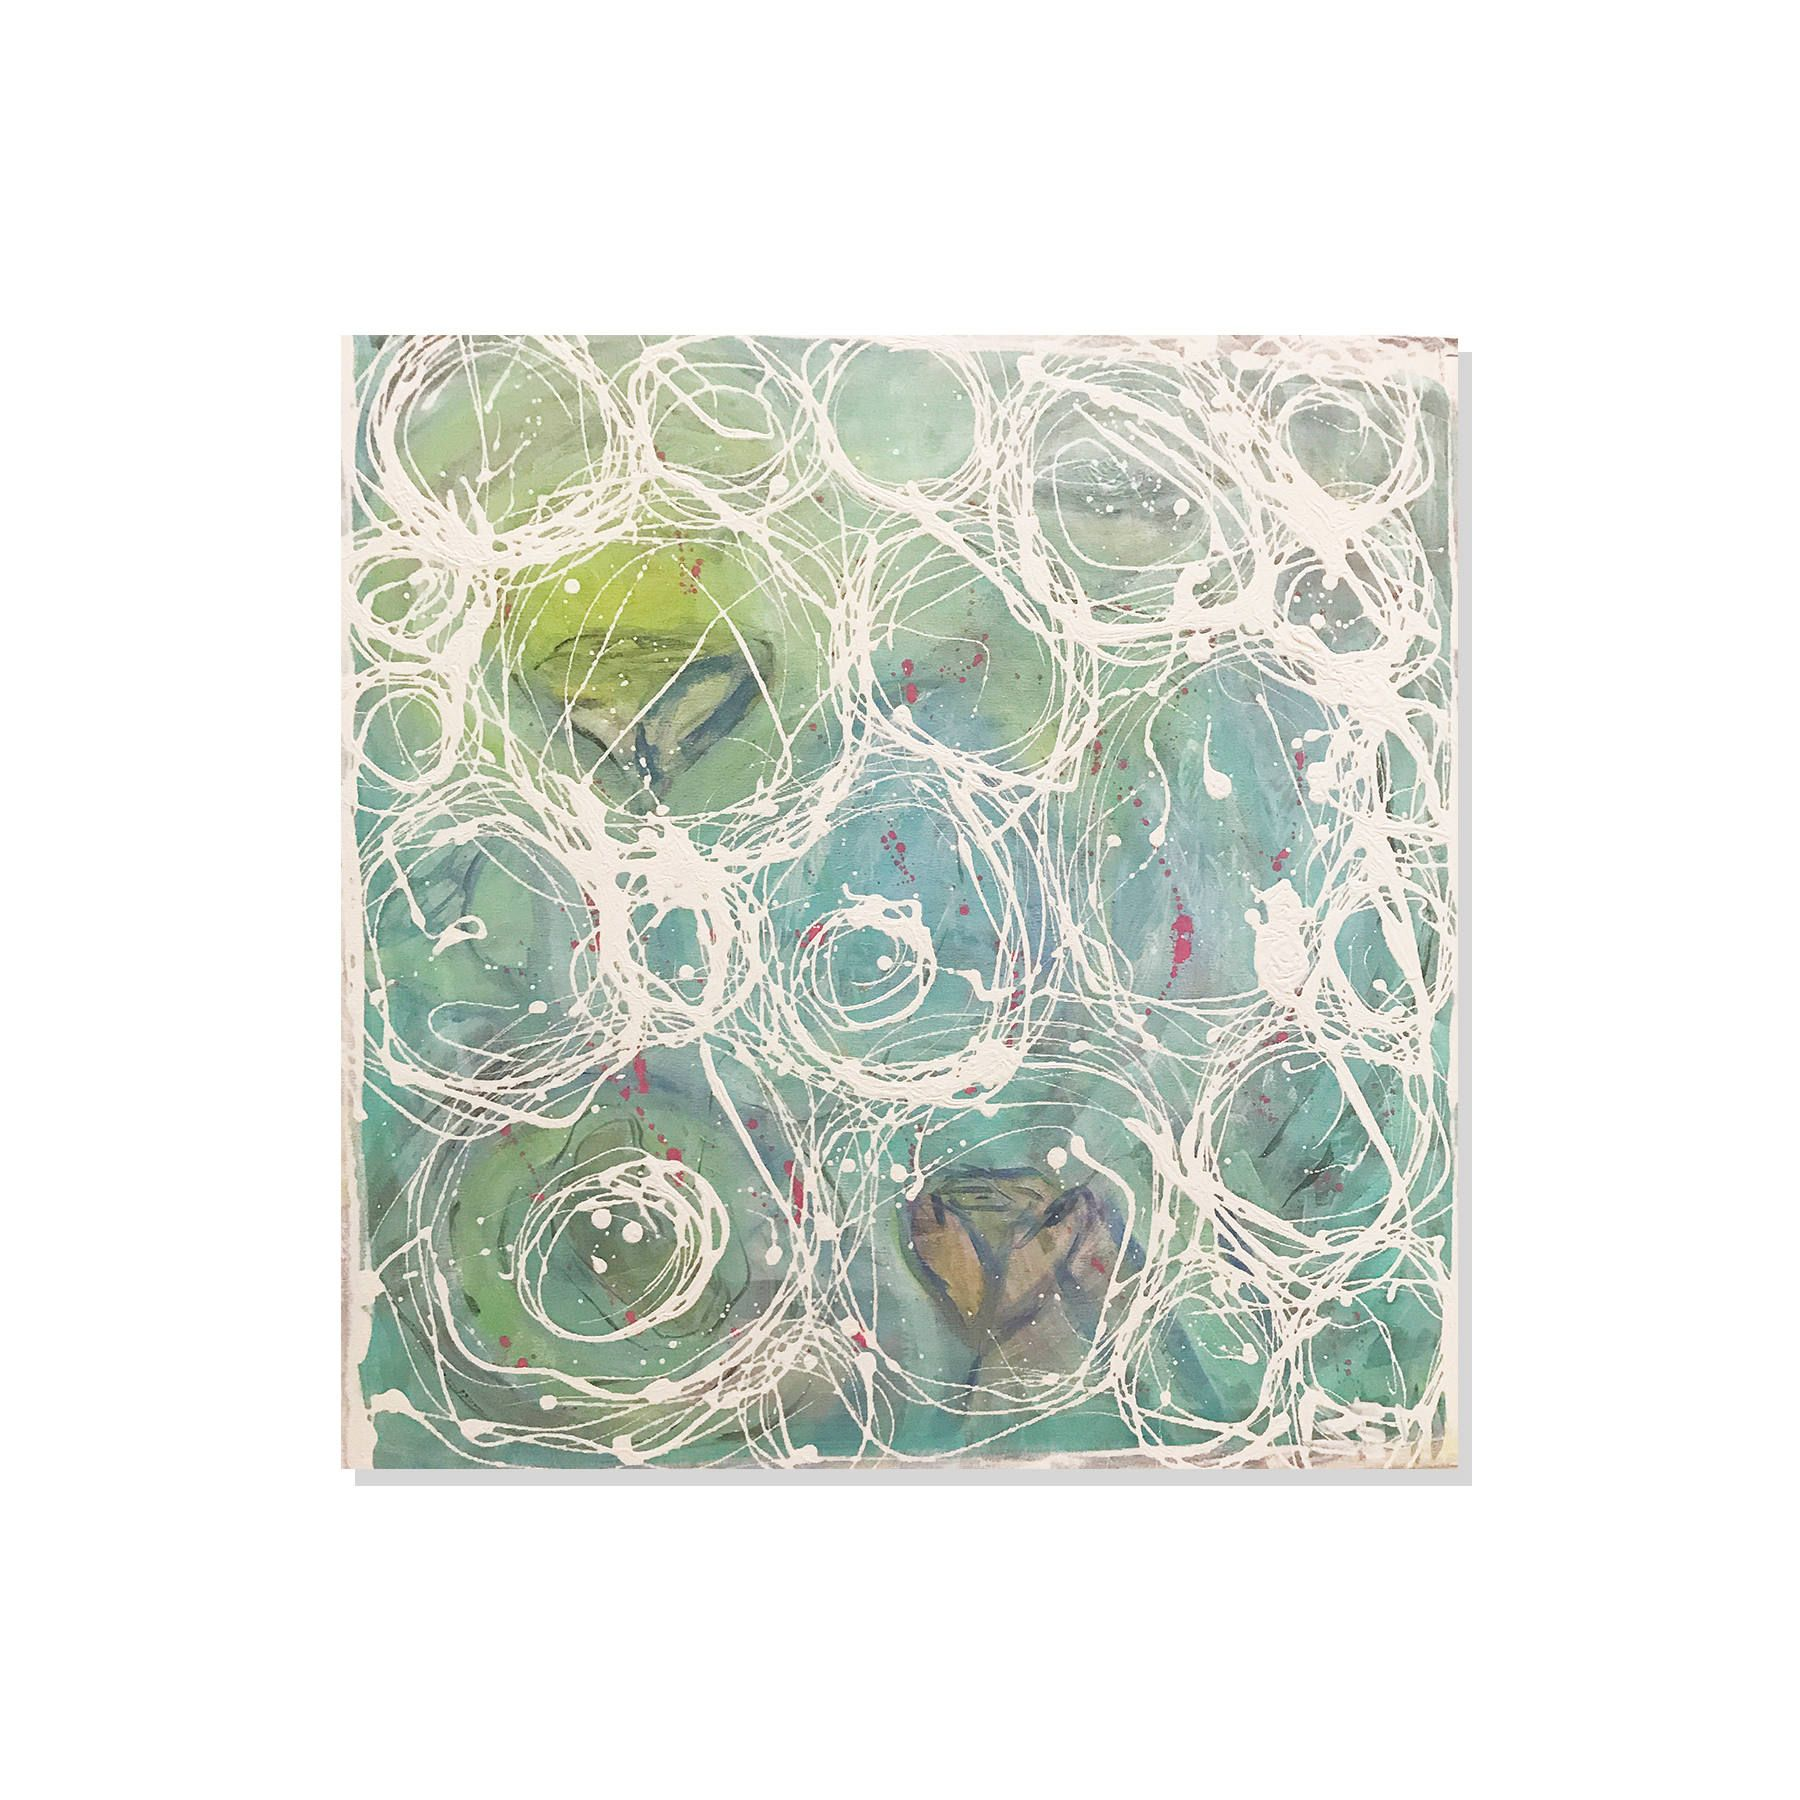 Wall art decor large abstract painting mixed media also rh pinterest